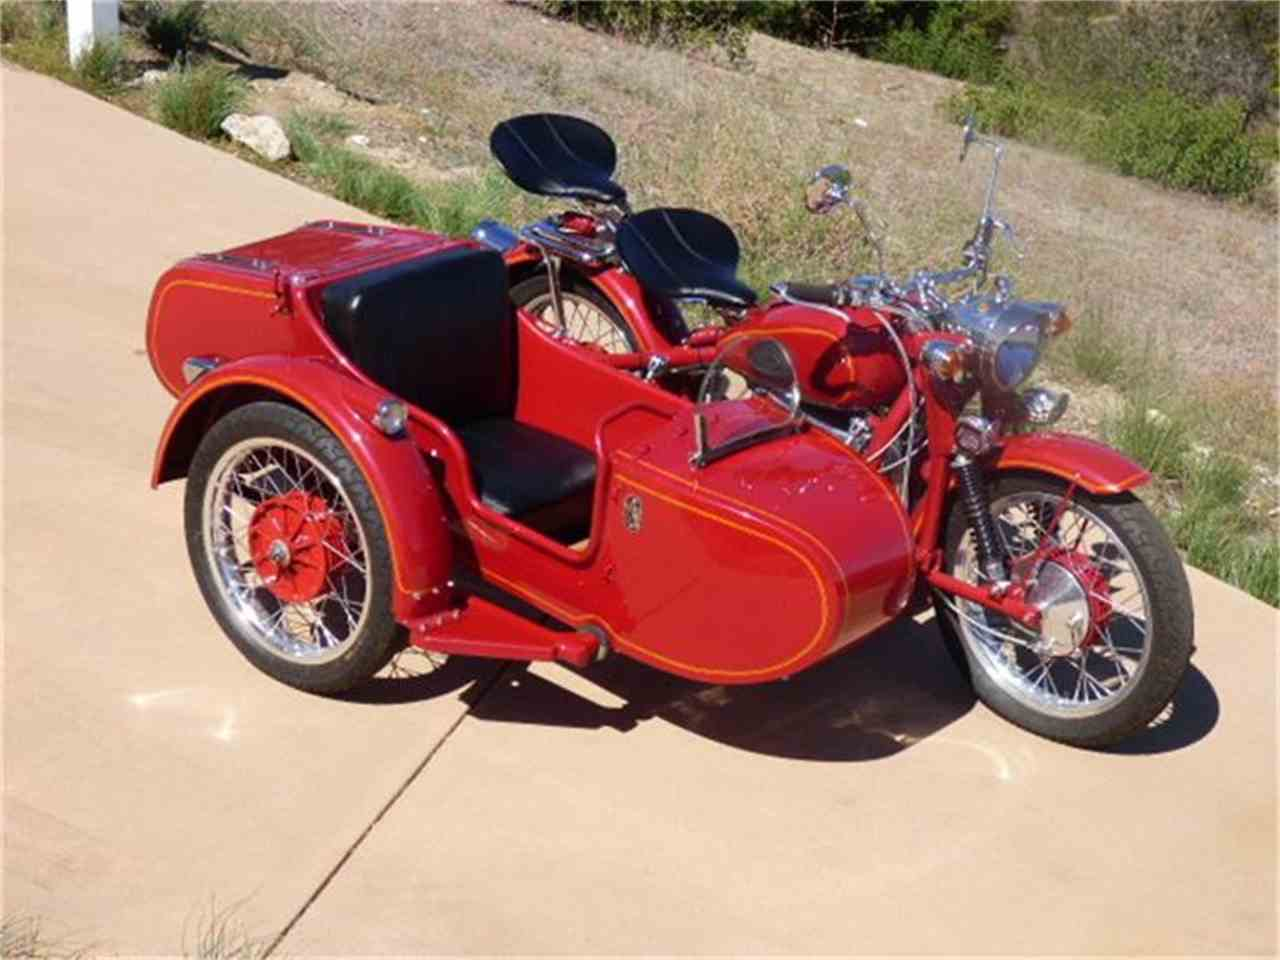 Three-wheelers are popular, but vintage motorcycles with